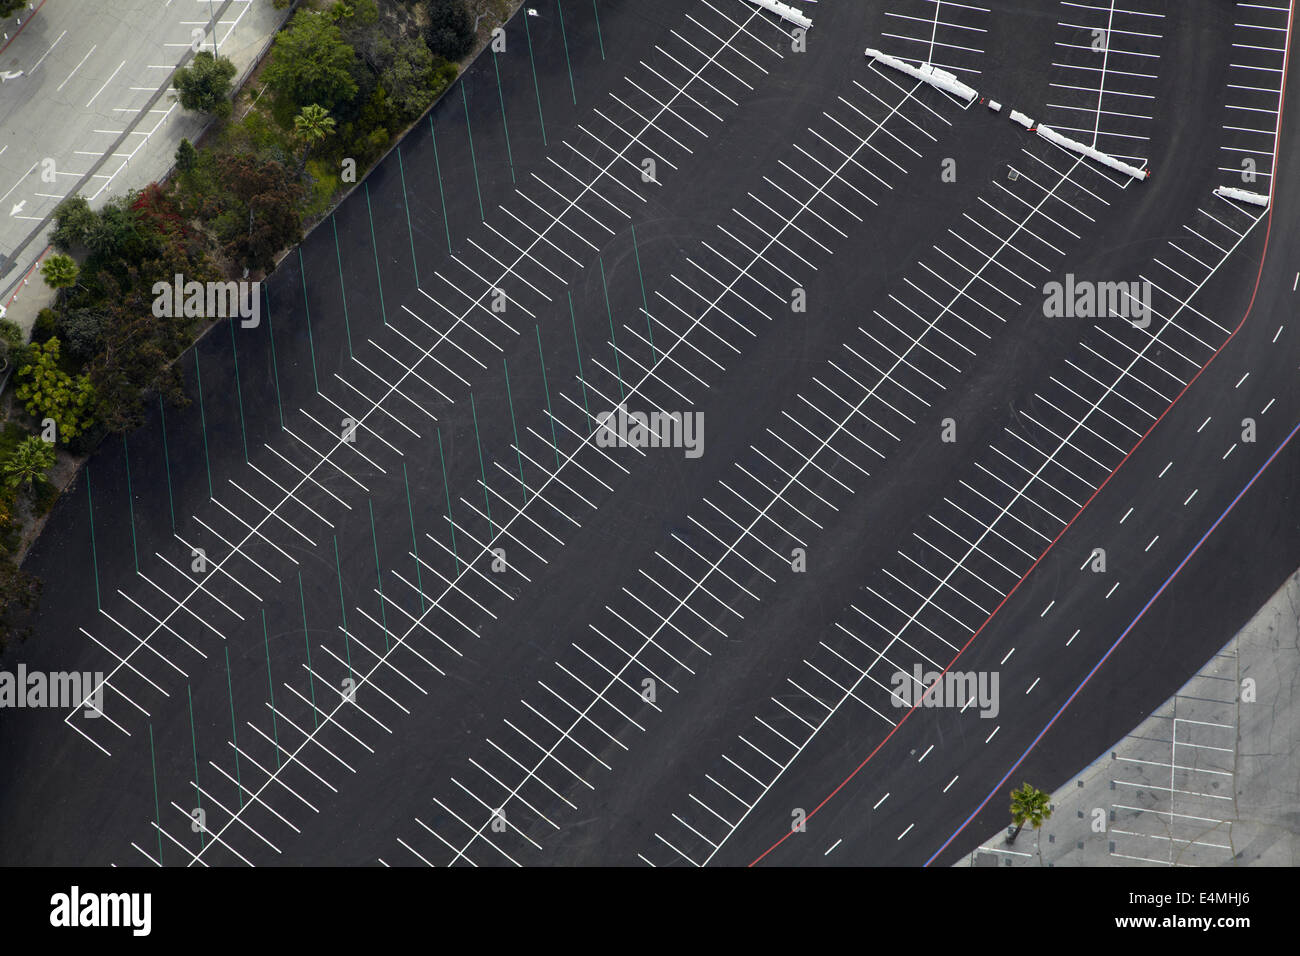 Car park at Dodger Stadium, home of the Los Angeles Dodgers baseball team, Los Angeles, California, USA - aerial - Stock Image